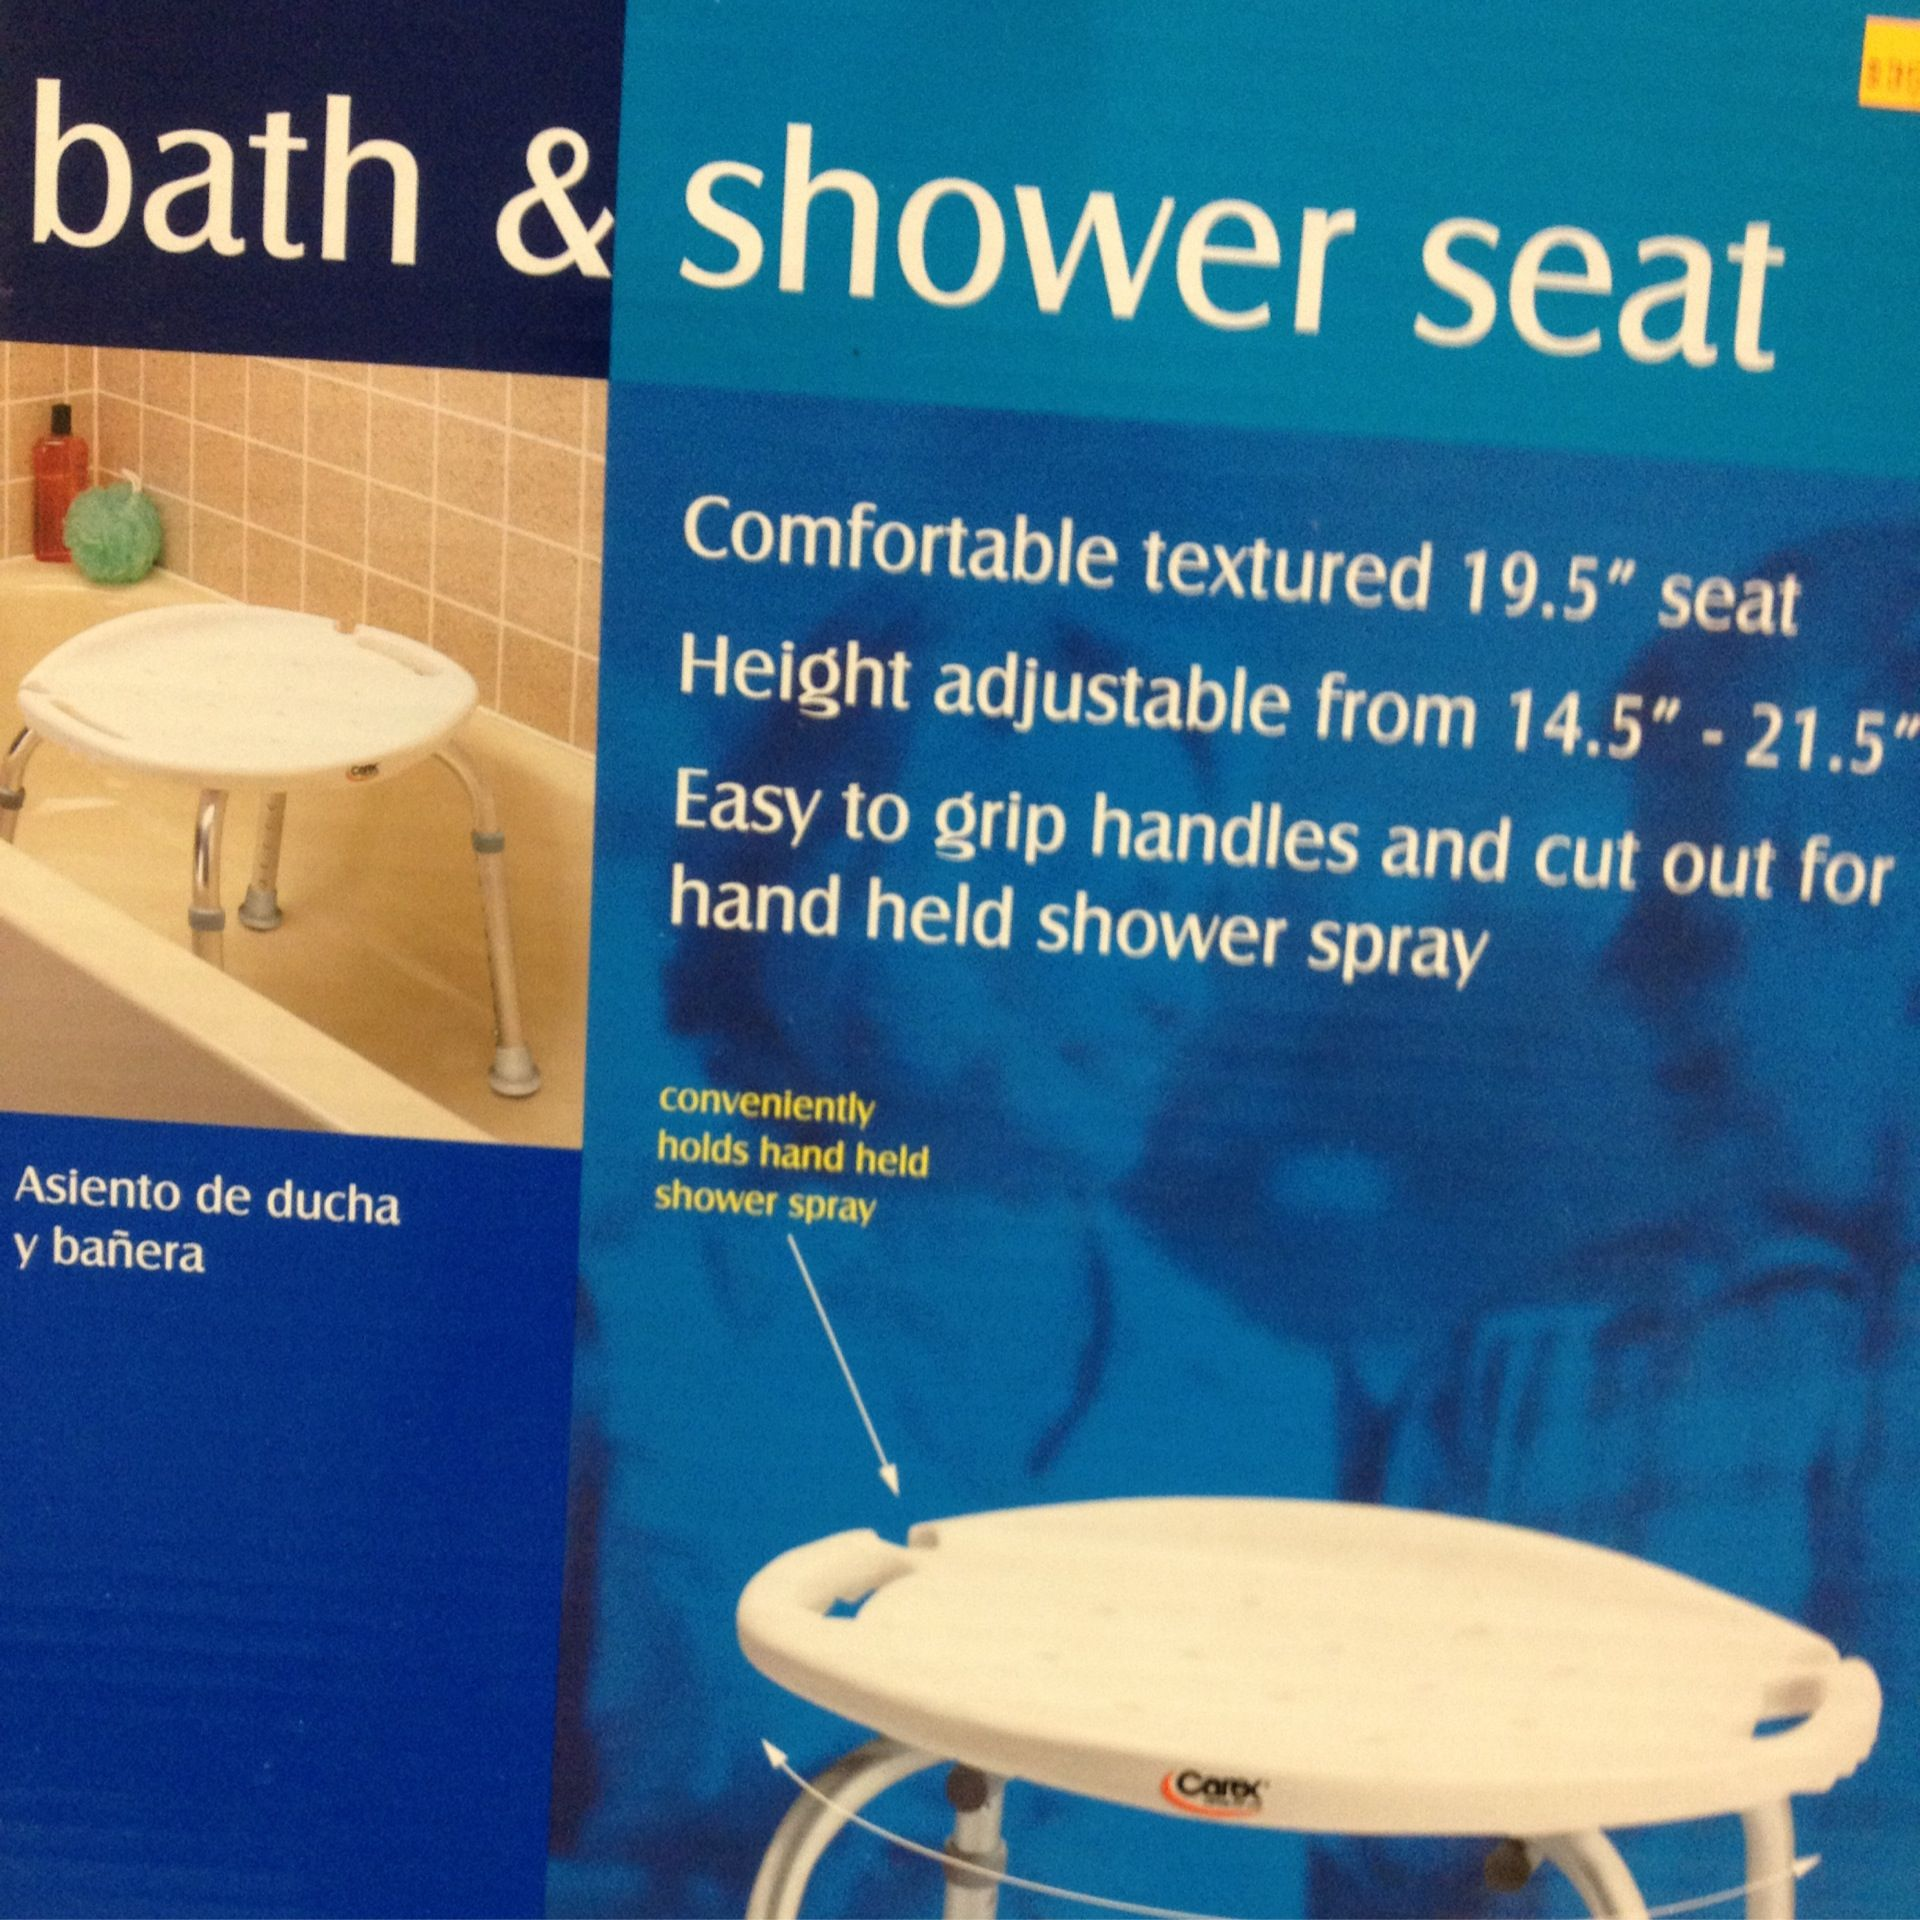 Bath And Shower Seat | Duro-Medical Equipment DME | Pinterest ...